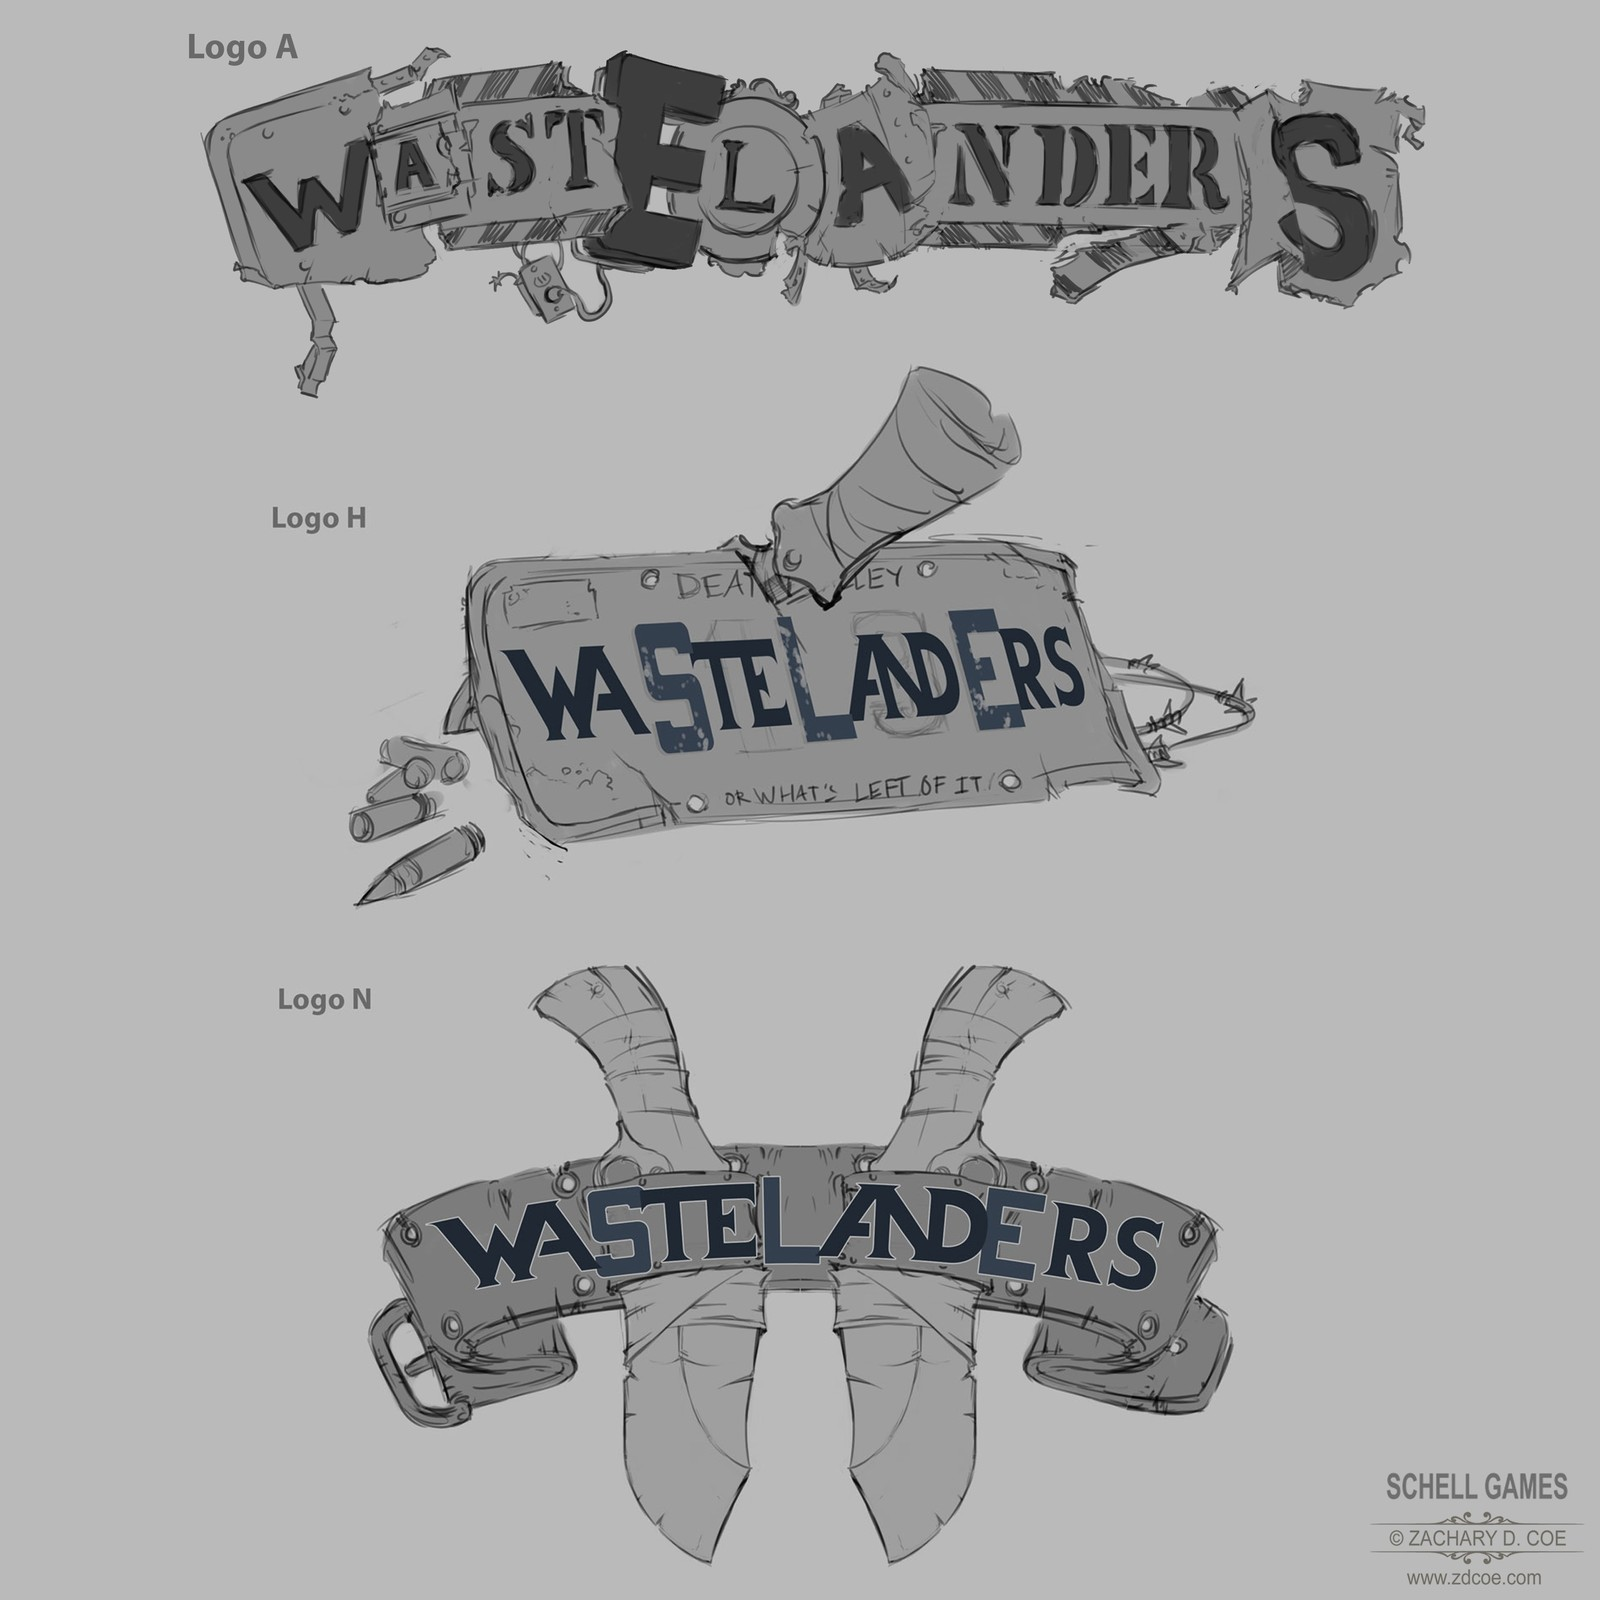 WASTELANDERS LOGO Sketches 2 by Zachary D. Coe